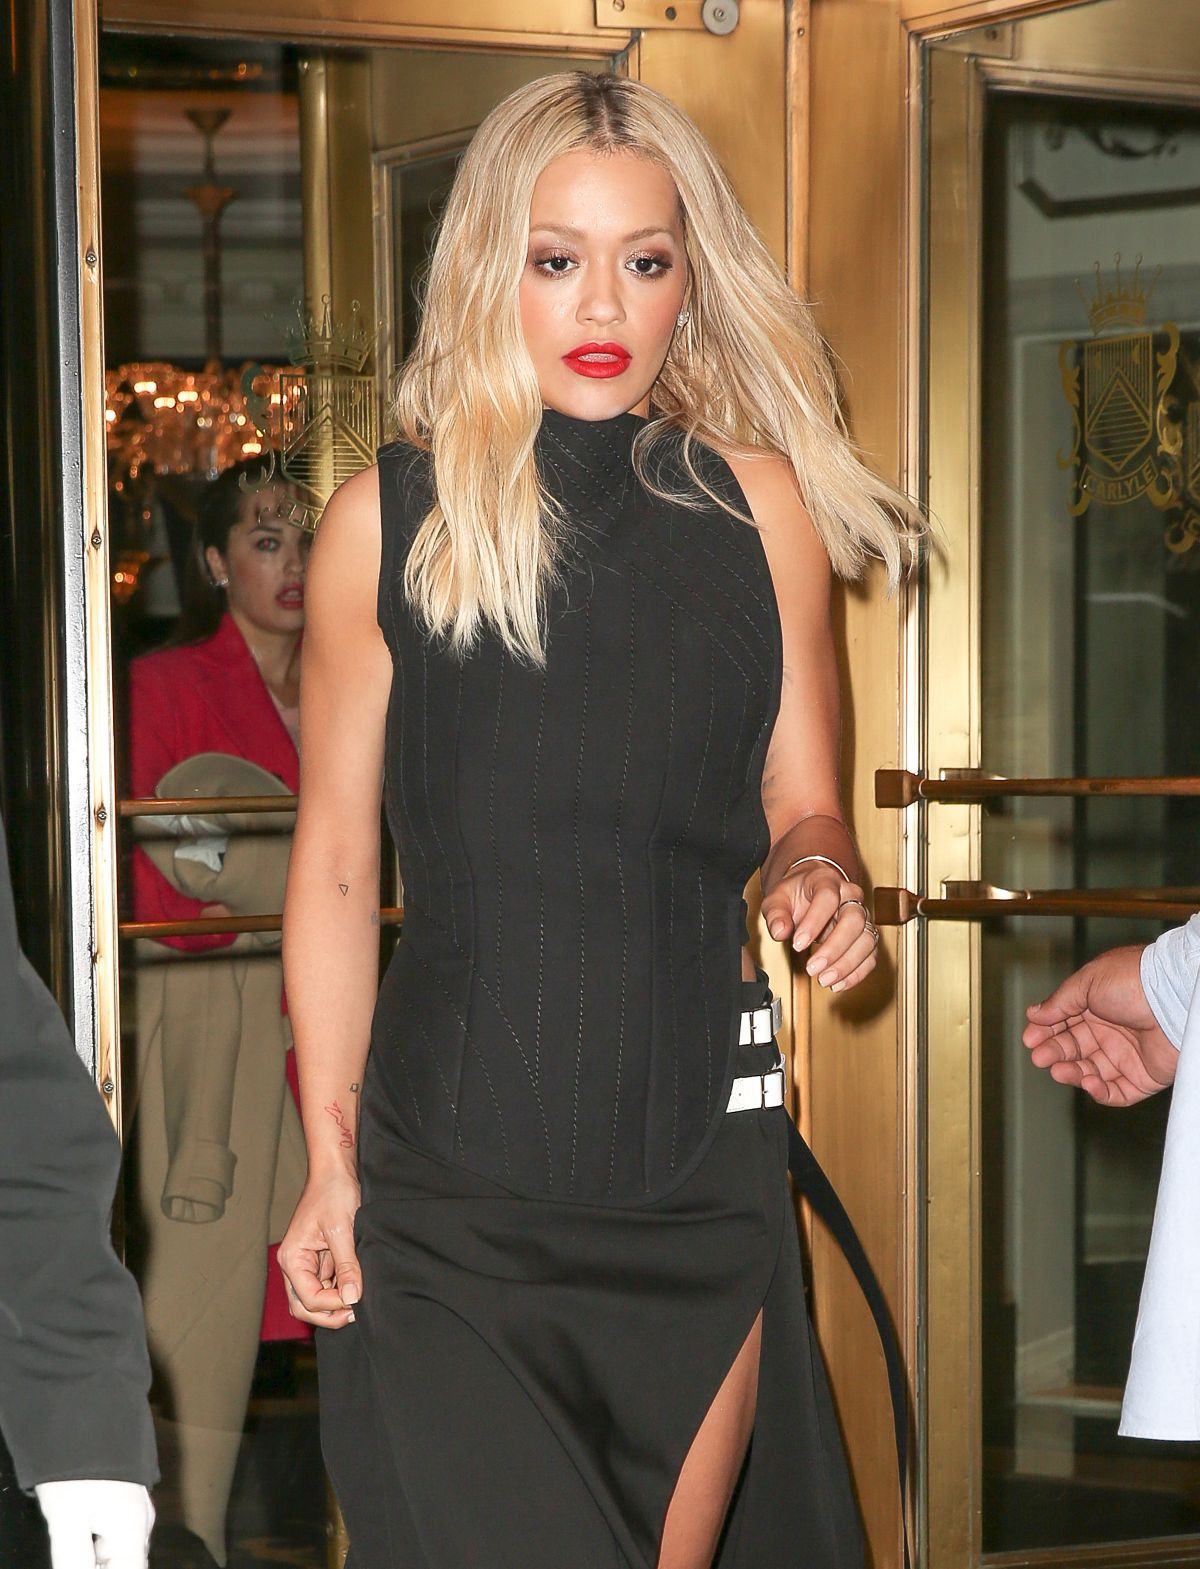 RITA ORA at Carlyle Hotel in New York 05/03/2016